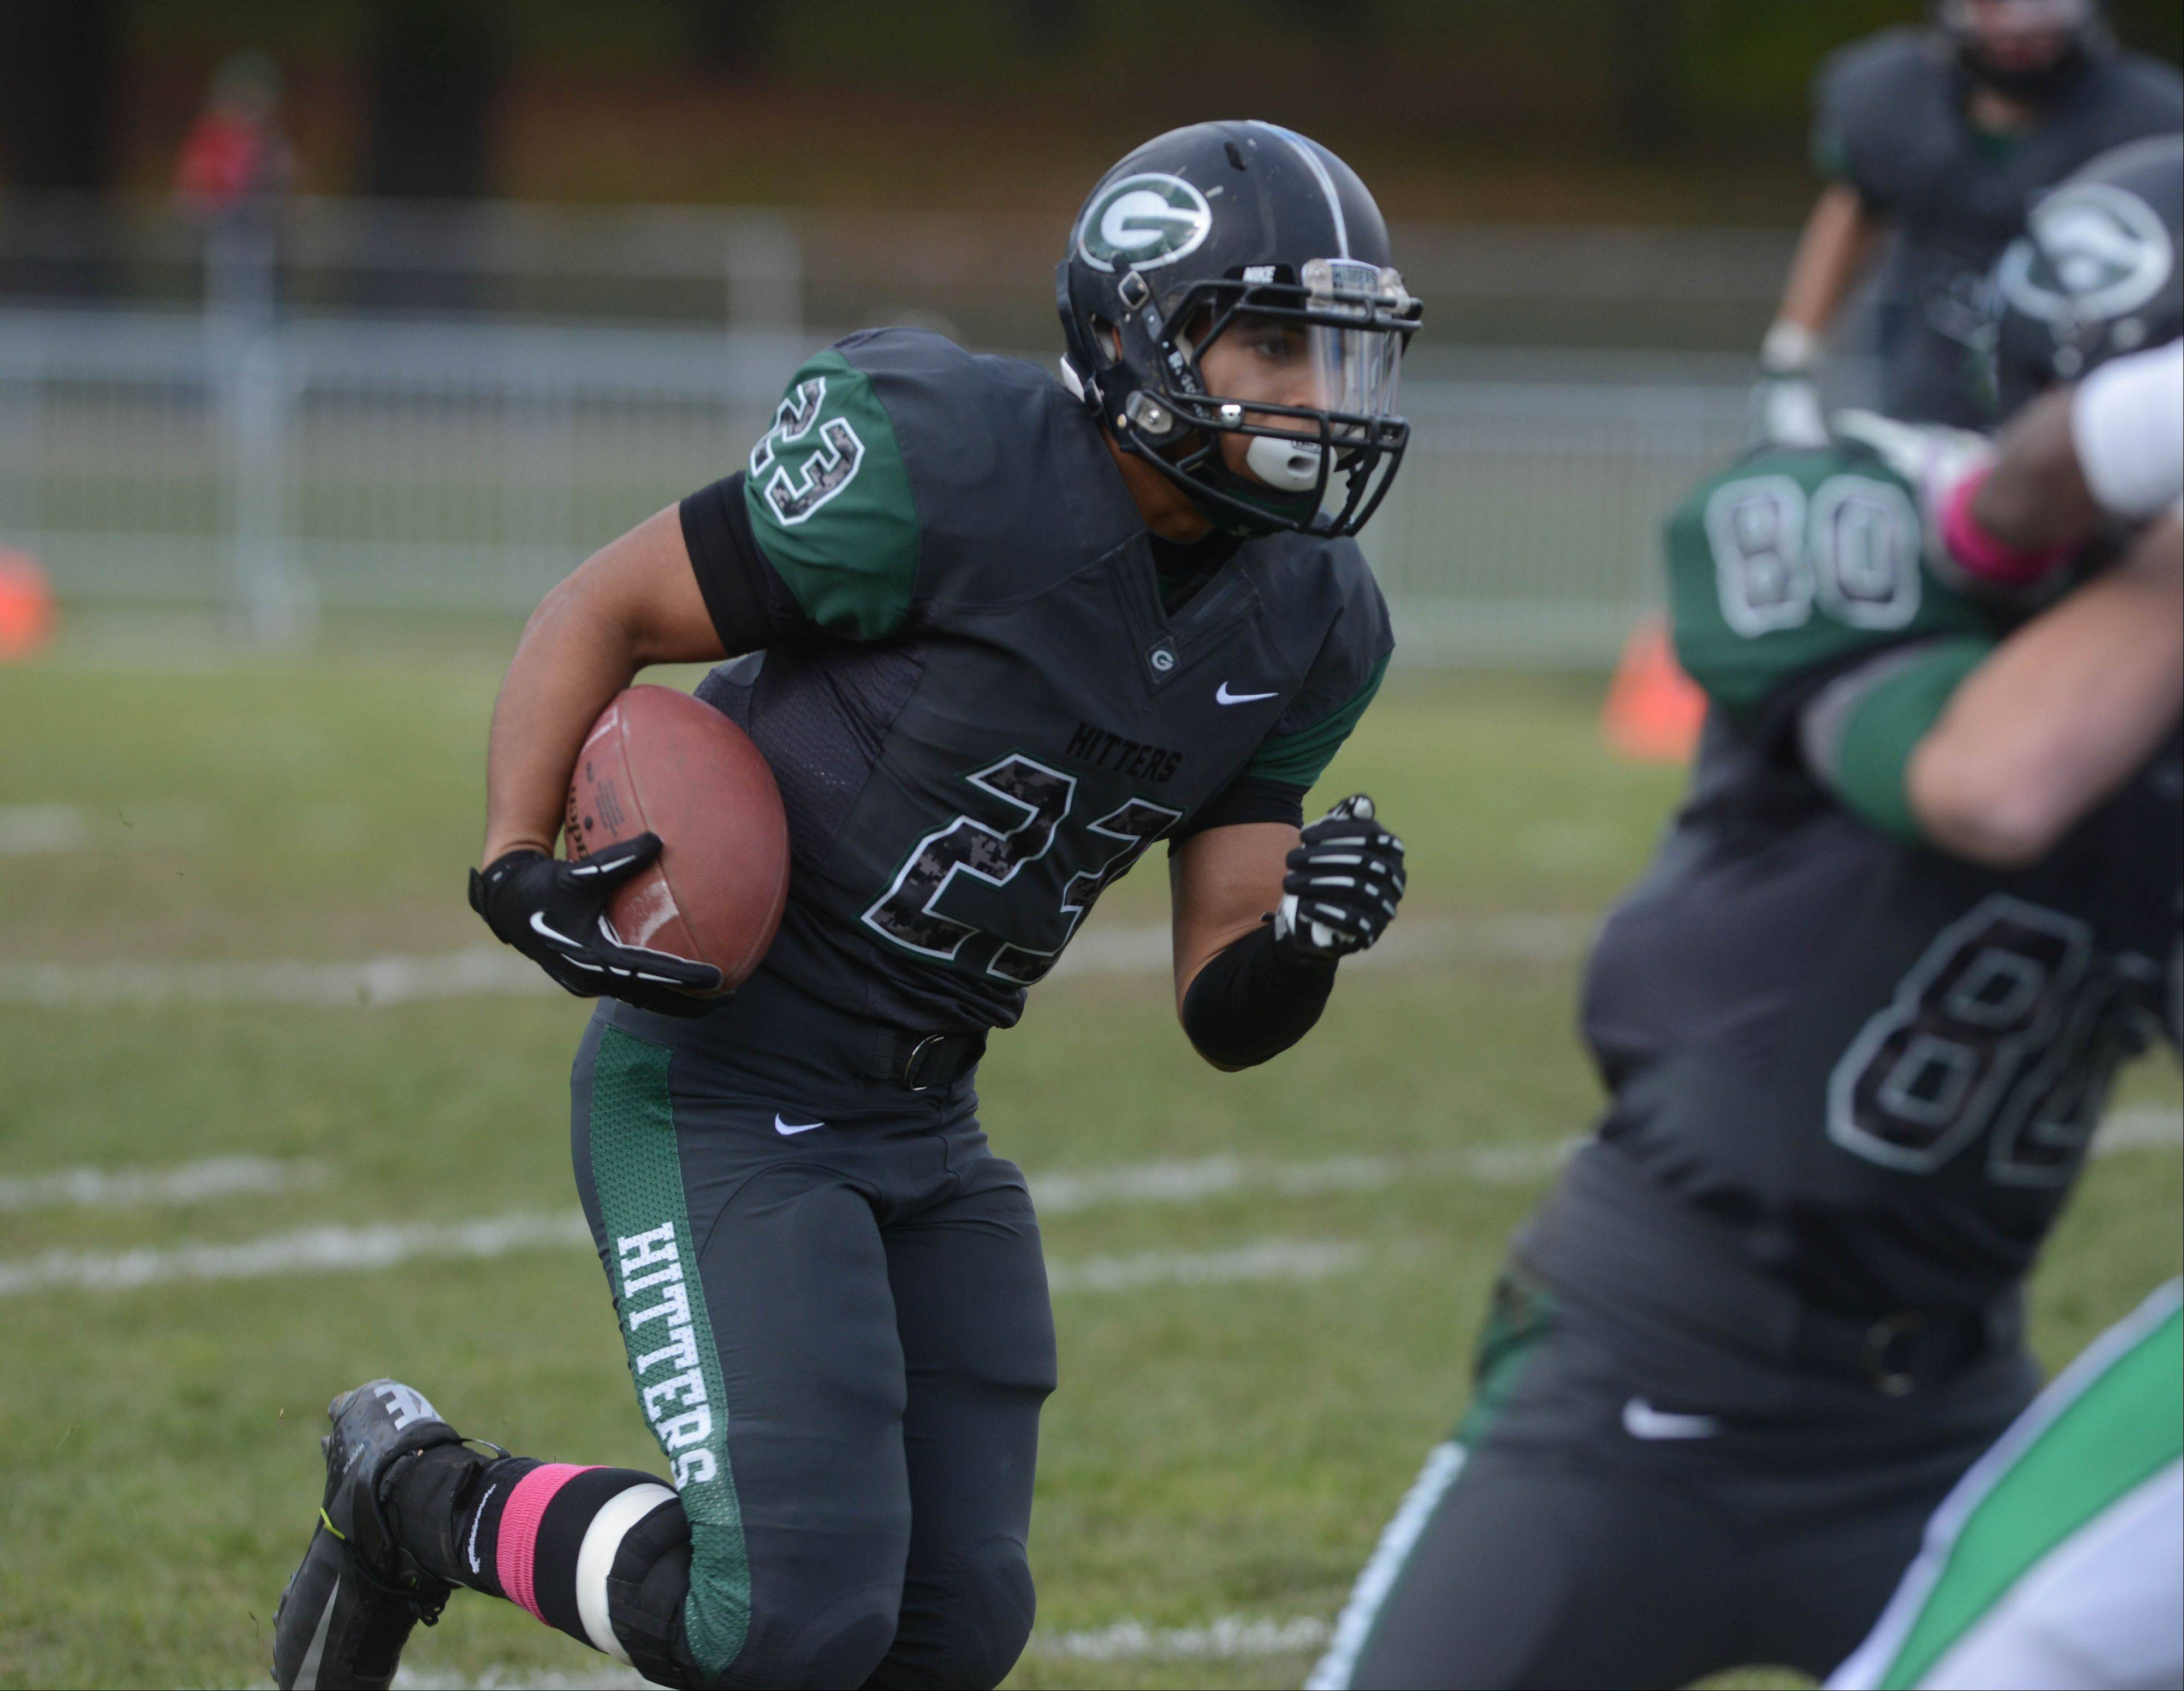 Scott Andrews of Glenbard West moves the ball during the York at Glenbard West football game Saturday.